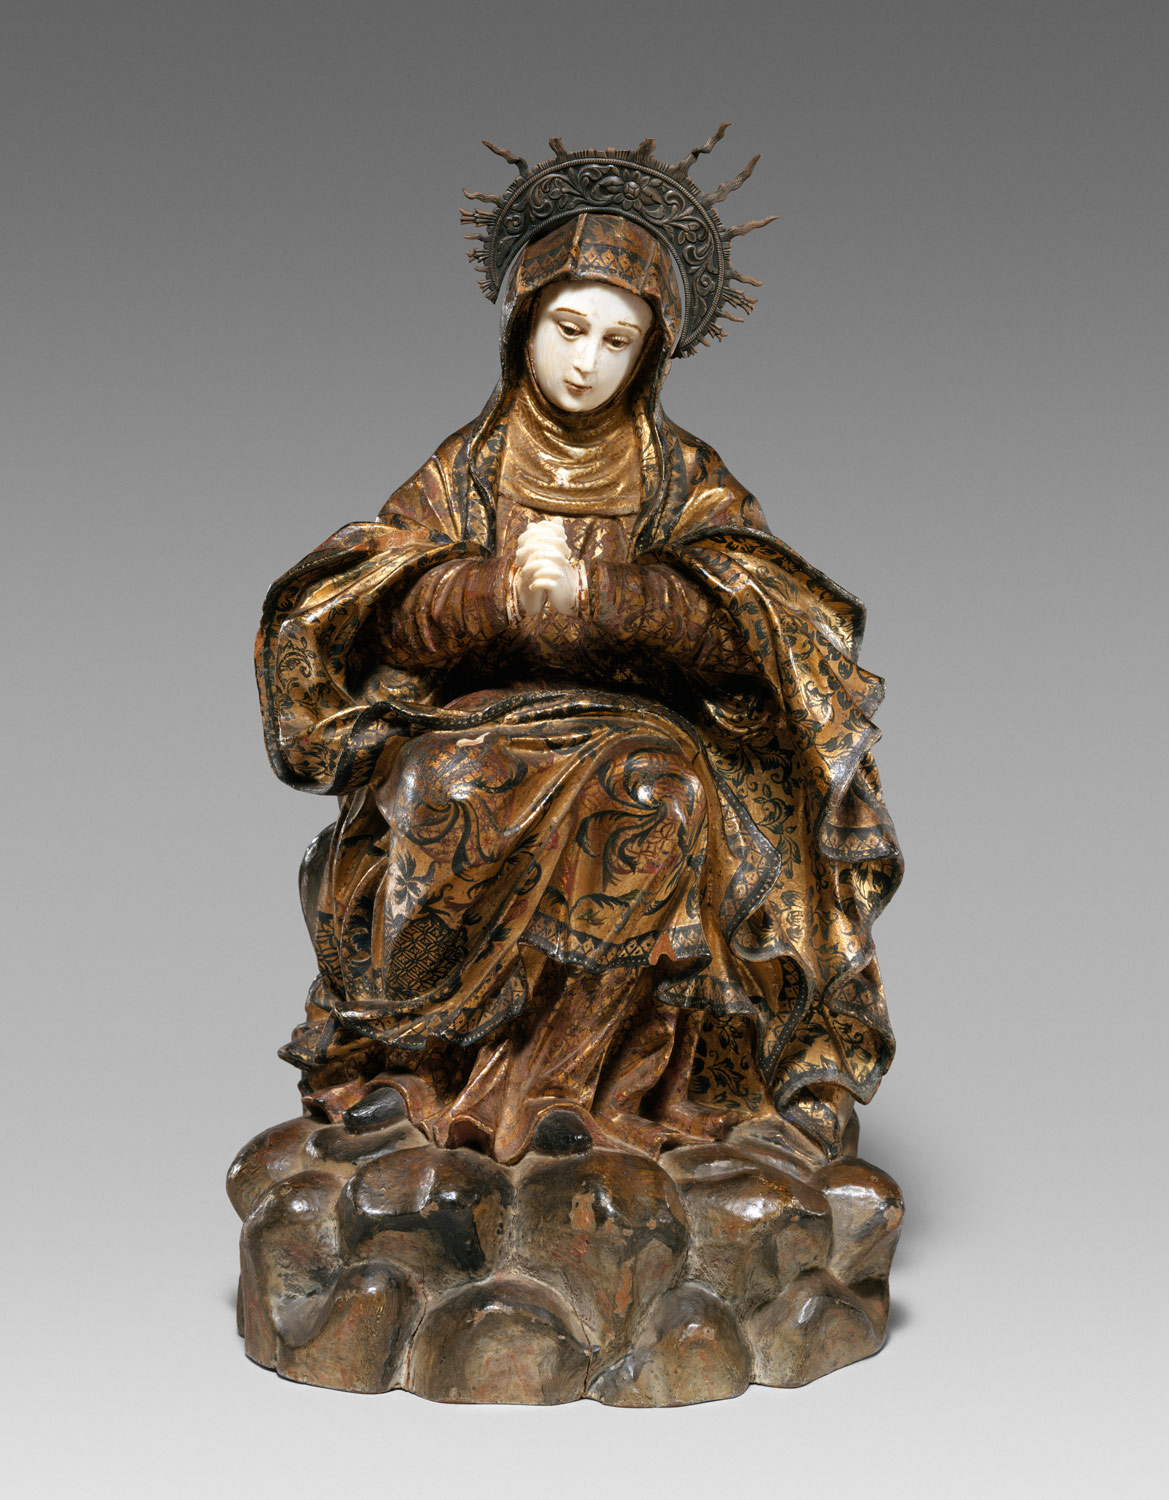 Mater Dolorosa (Mourning Virgin)